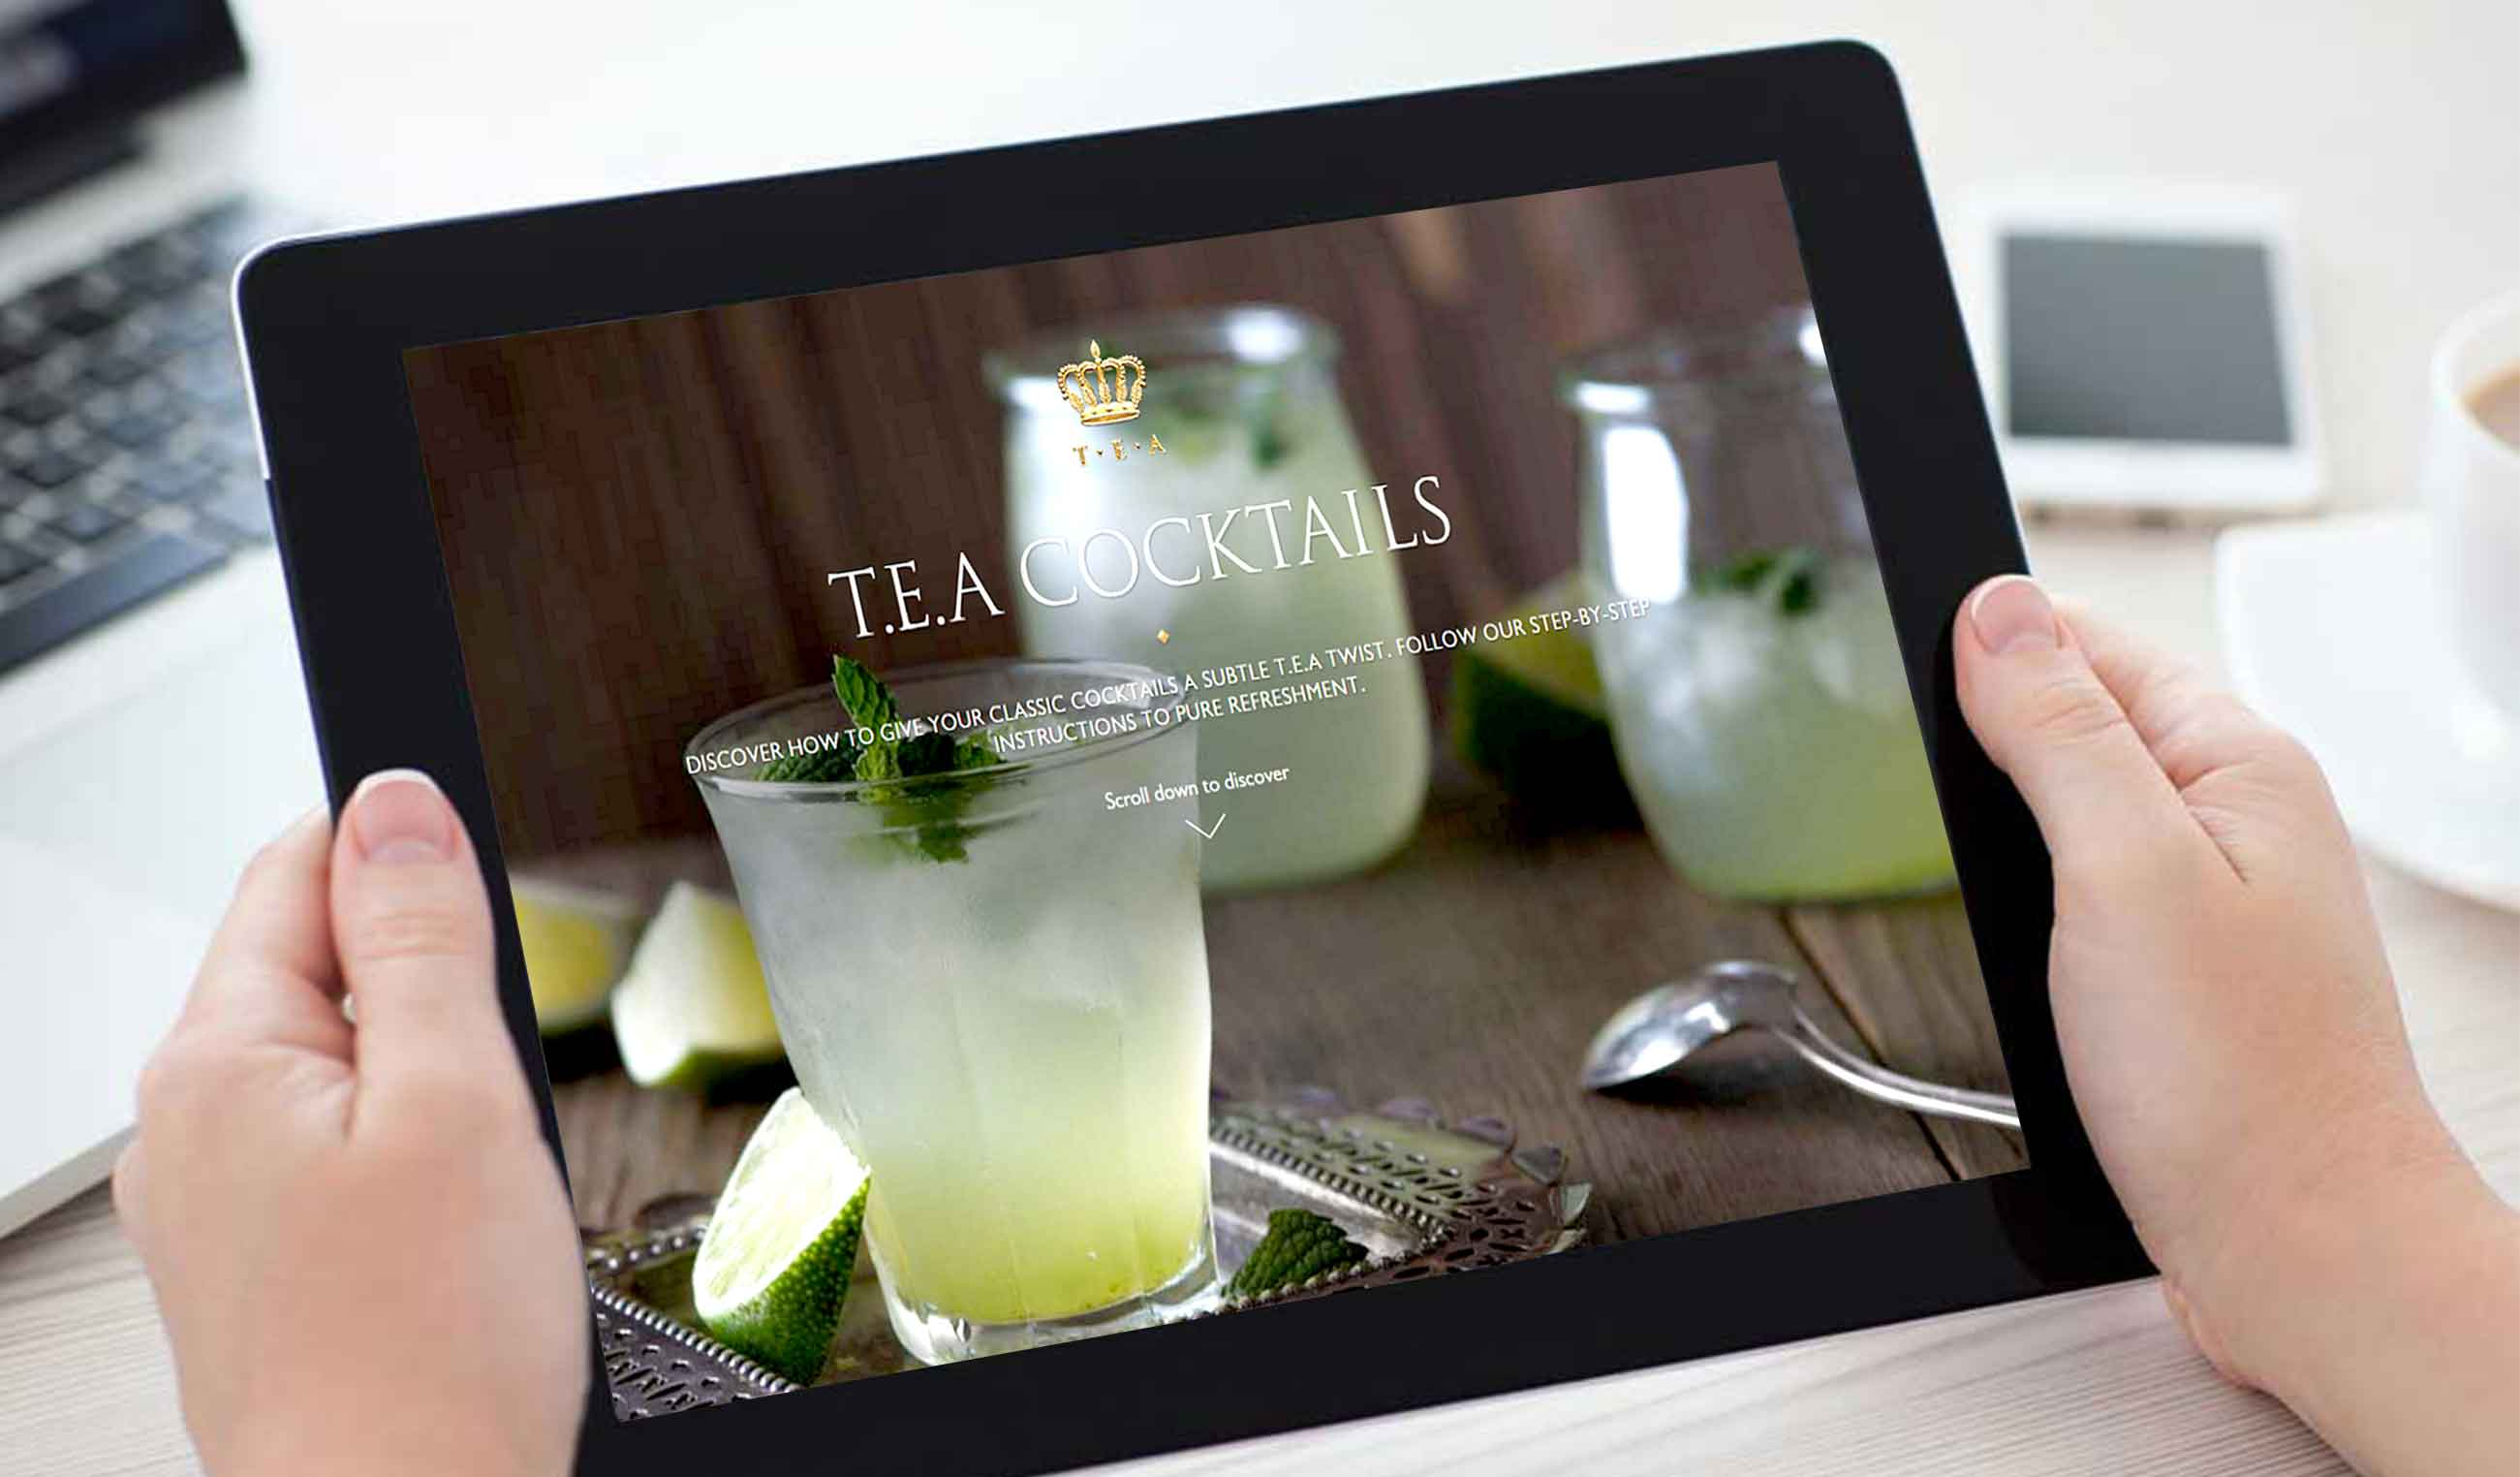 T.E.A website on IPad